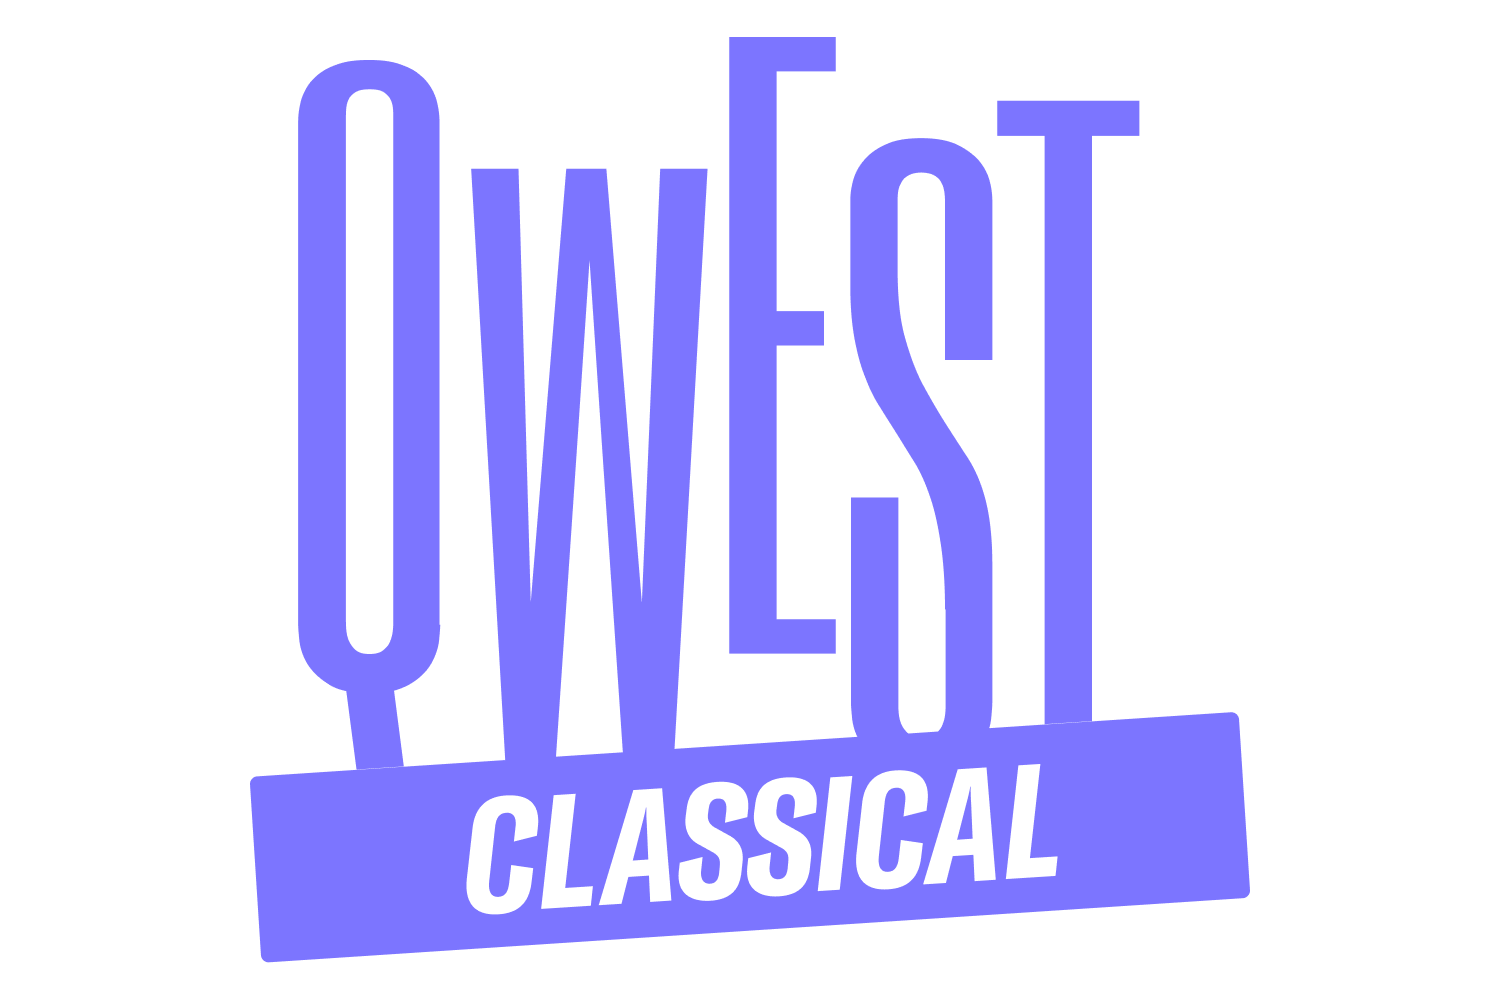 QwestTV Classical